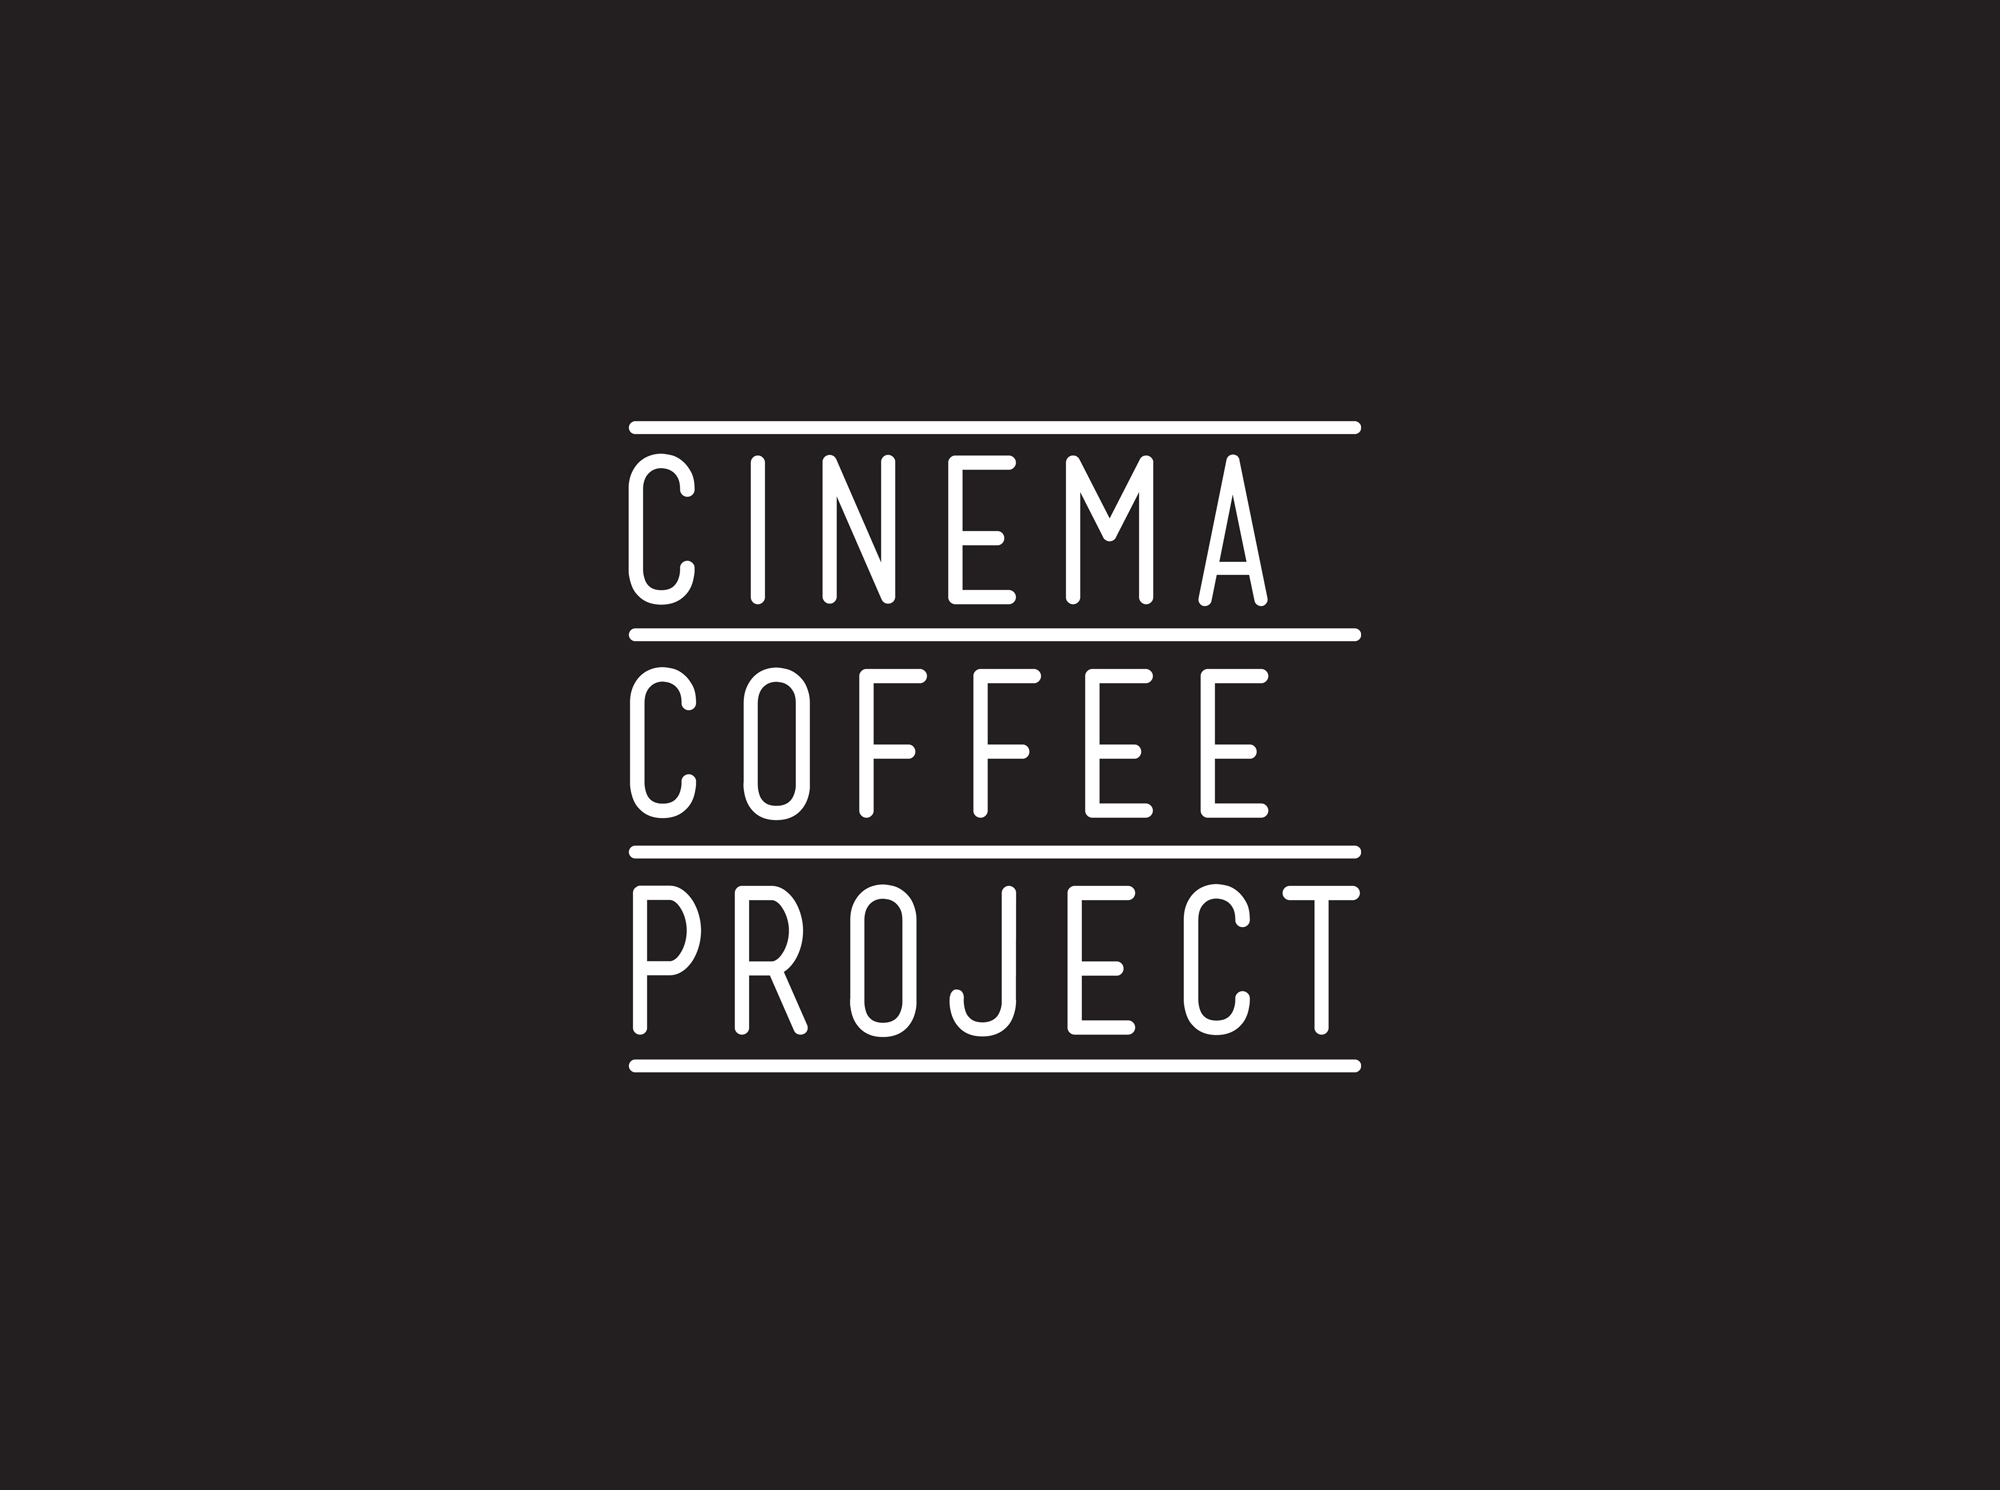 Cover image: Cinema Coffee Project